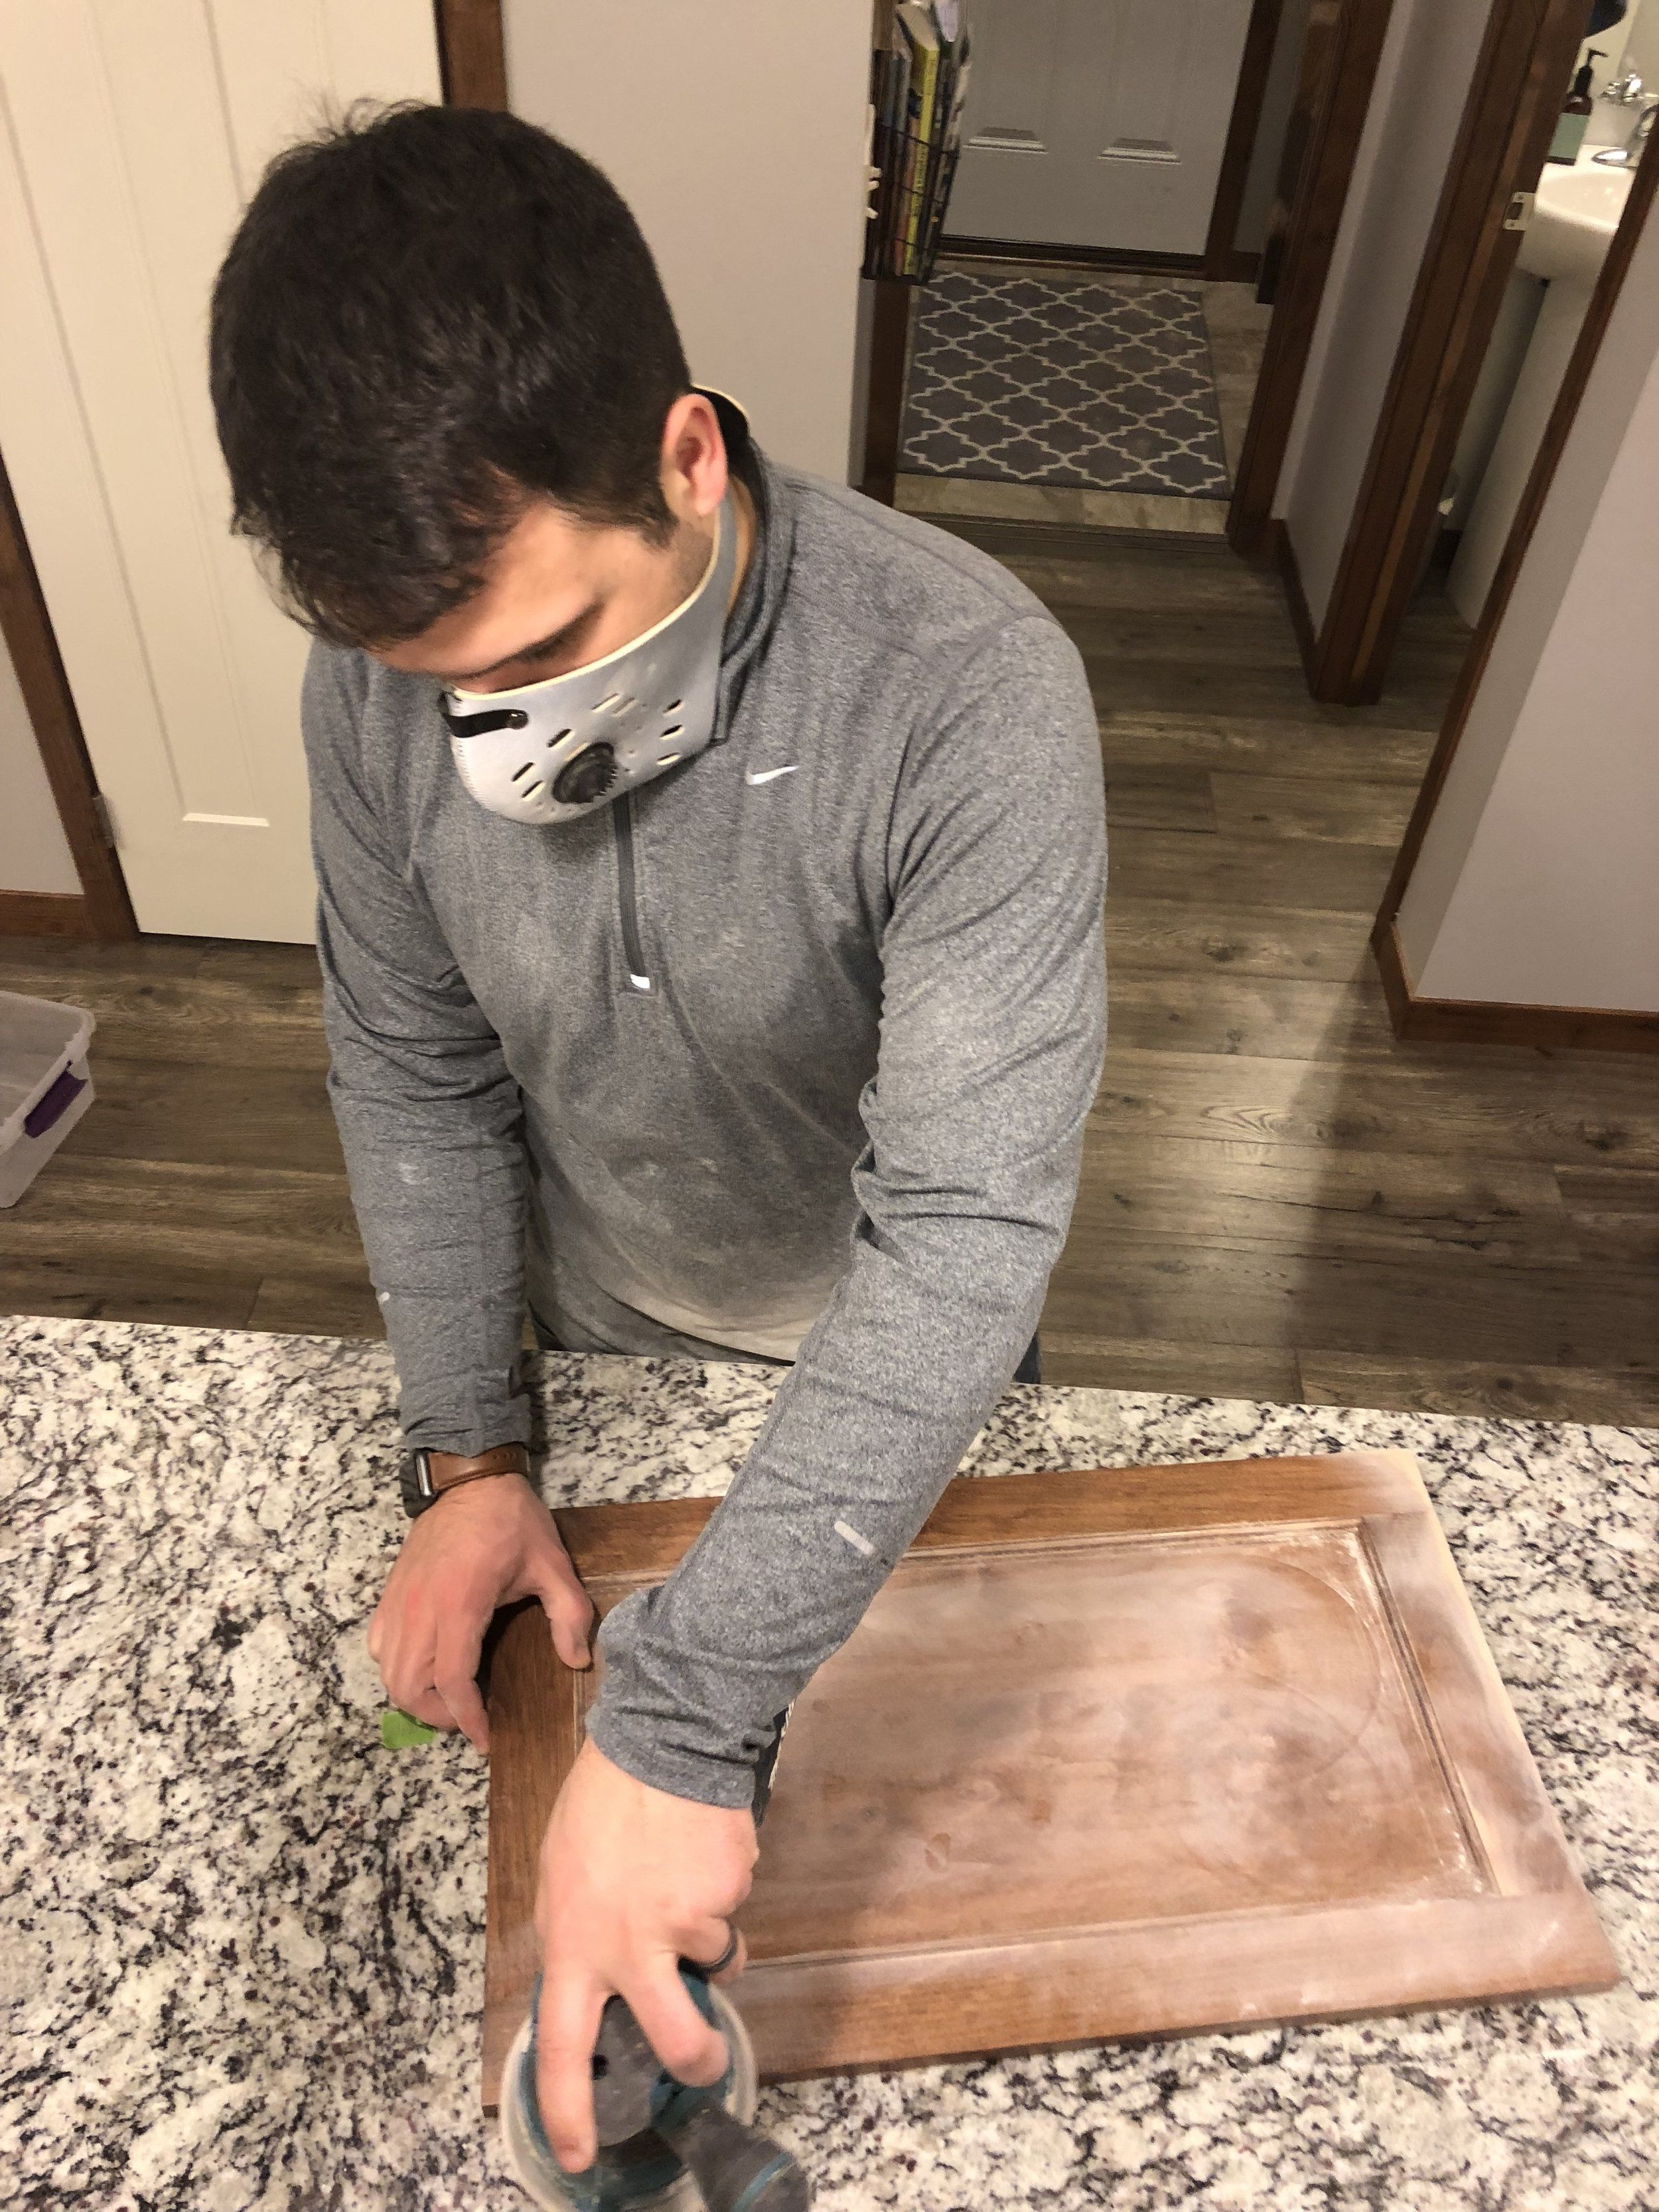 Putter helped me out with some of the sanding. When ...